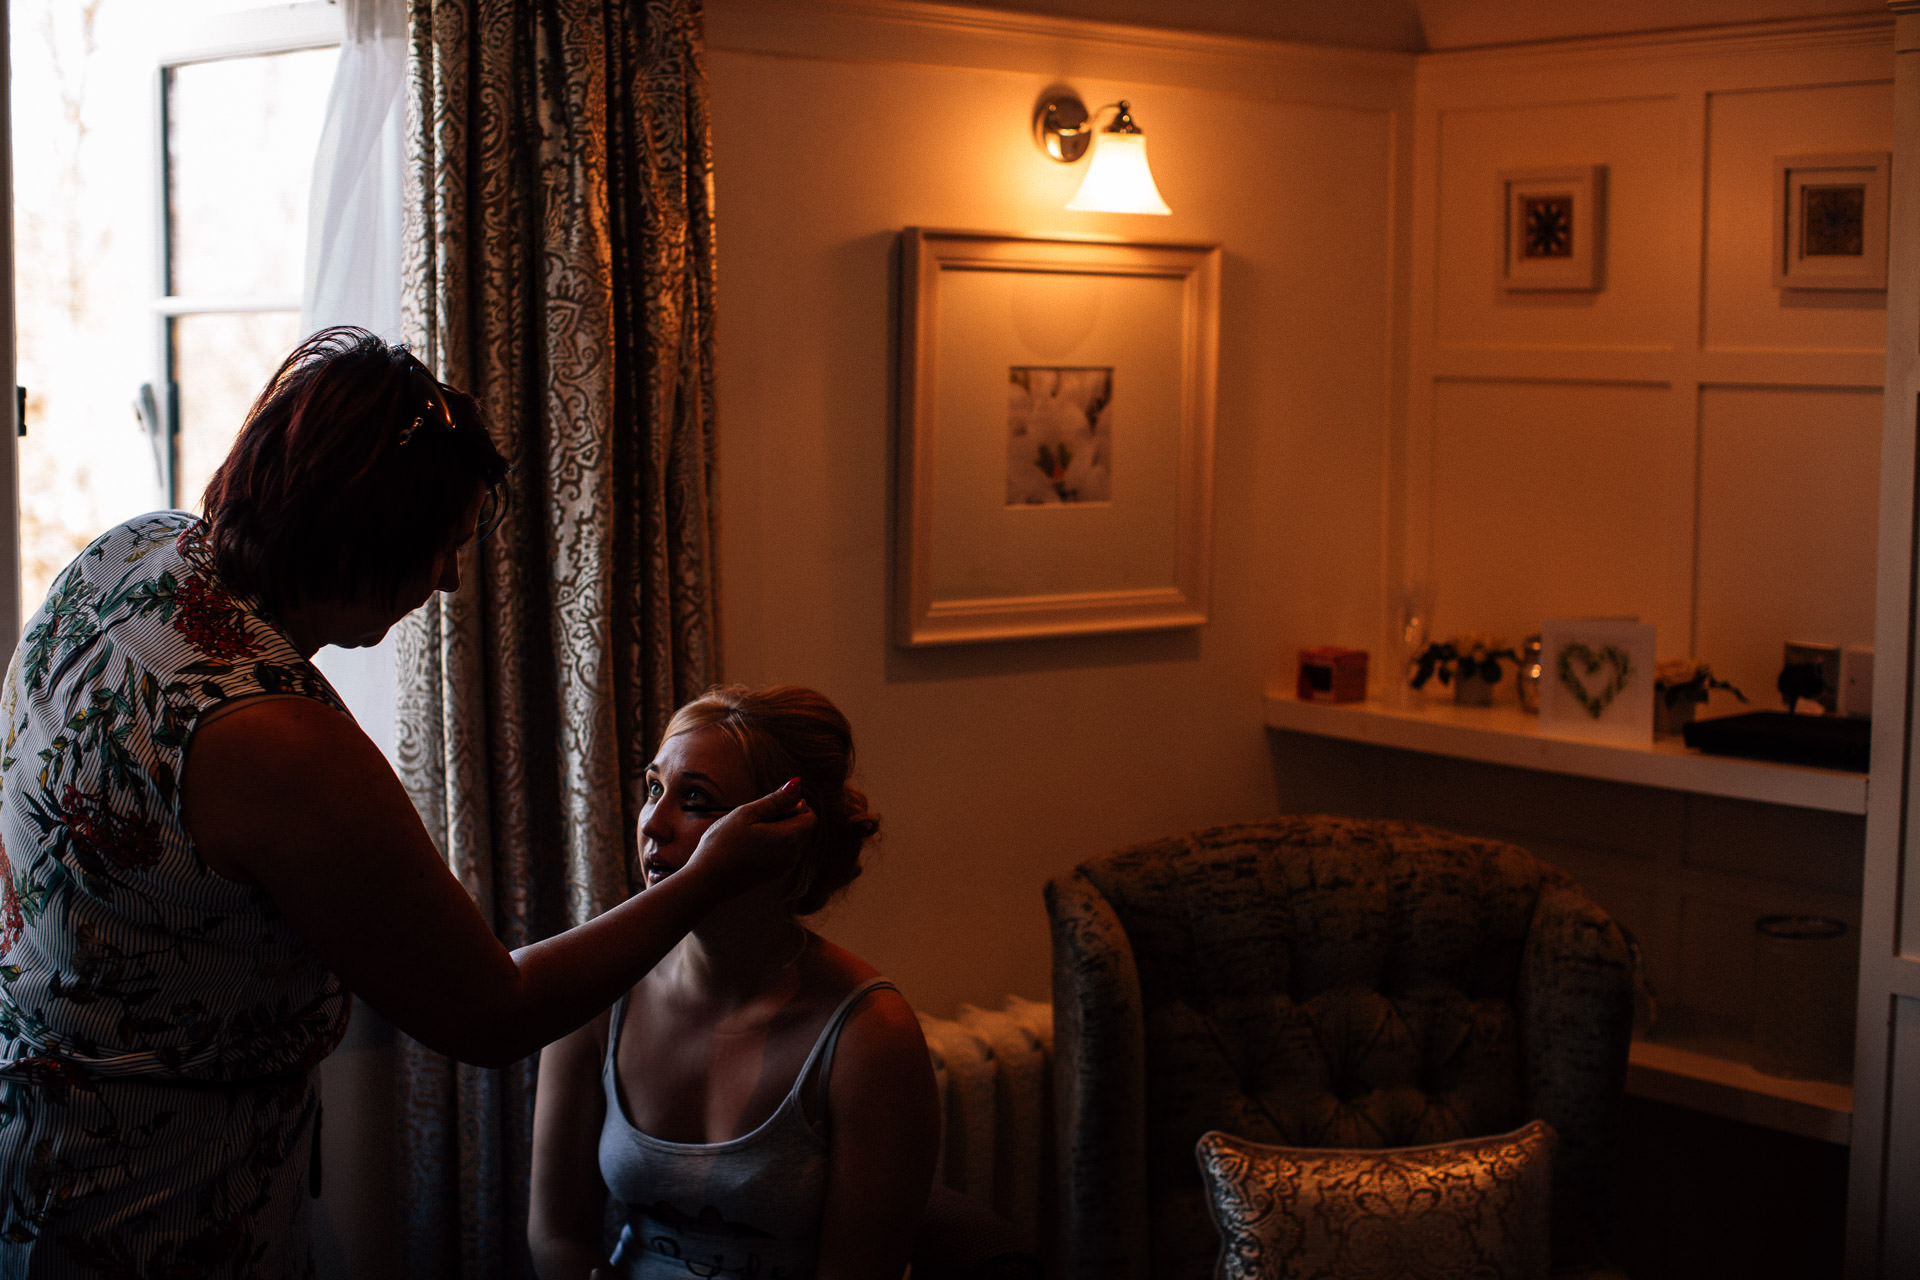 The Wild Boar Wedding Photography - EM - hair being done by the window